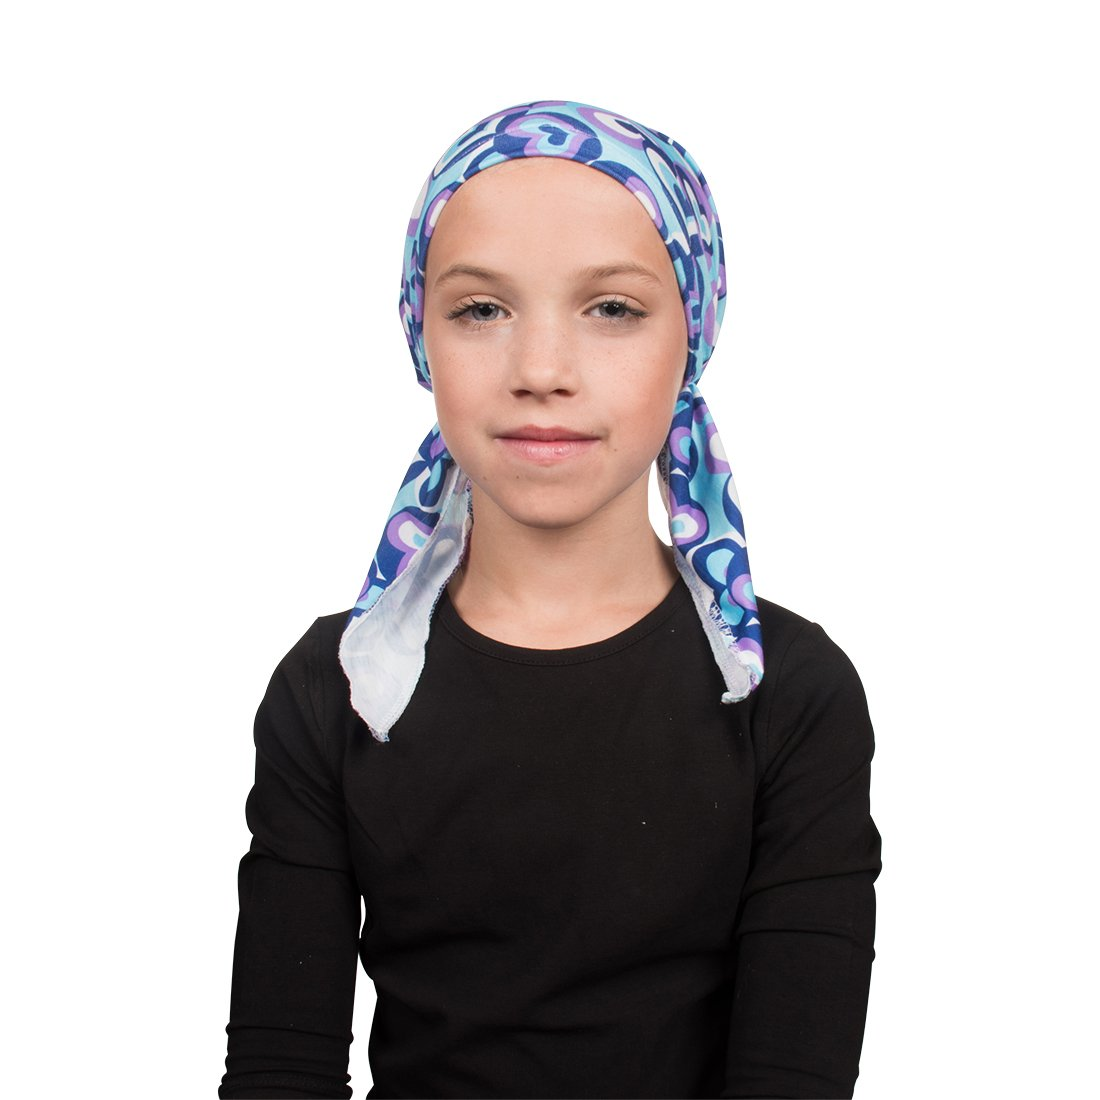 Chemo Cap Pretied for Girls Soft Cotton Cancer Scarf - Blue & Purple Hearts